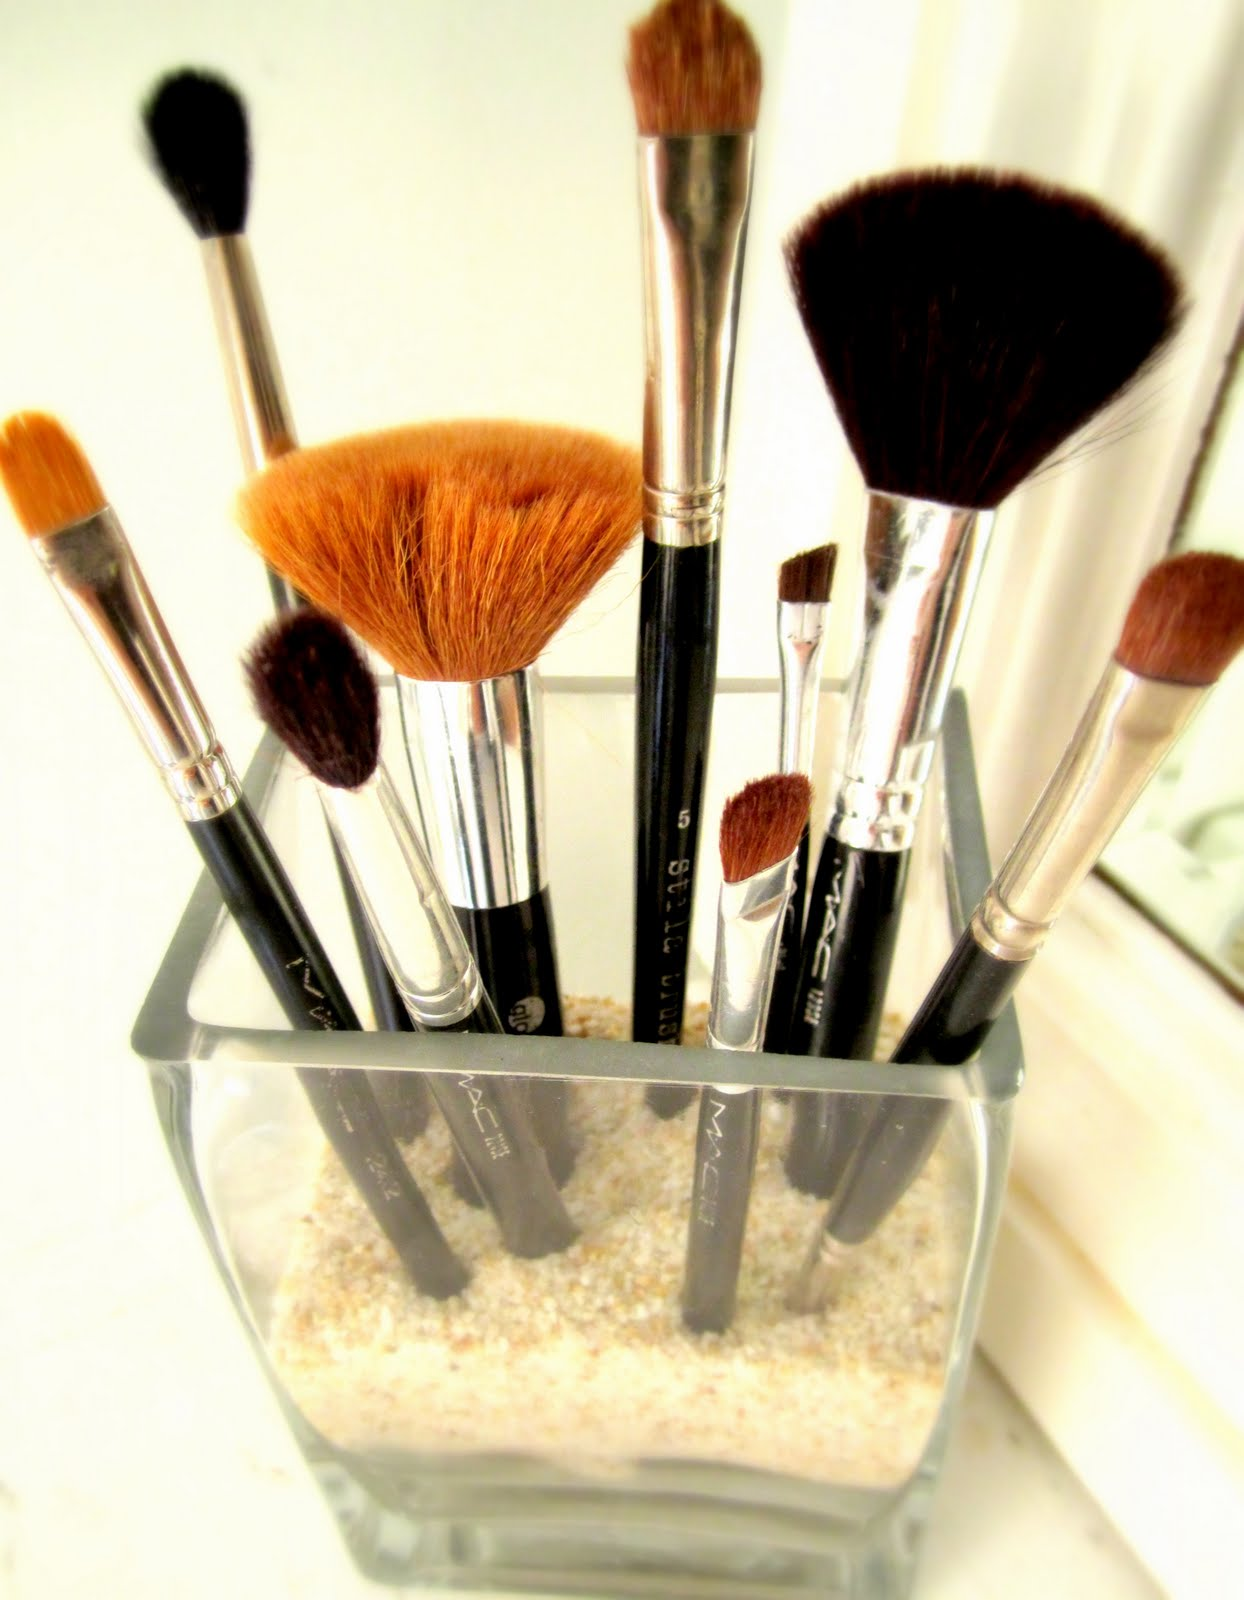 deliciously organized: Storing Various Sizes of Makeup Brushes